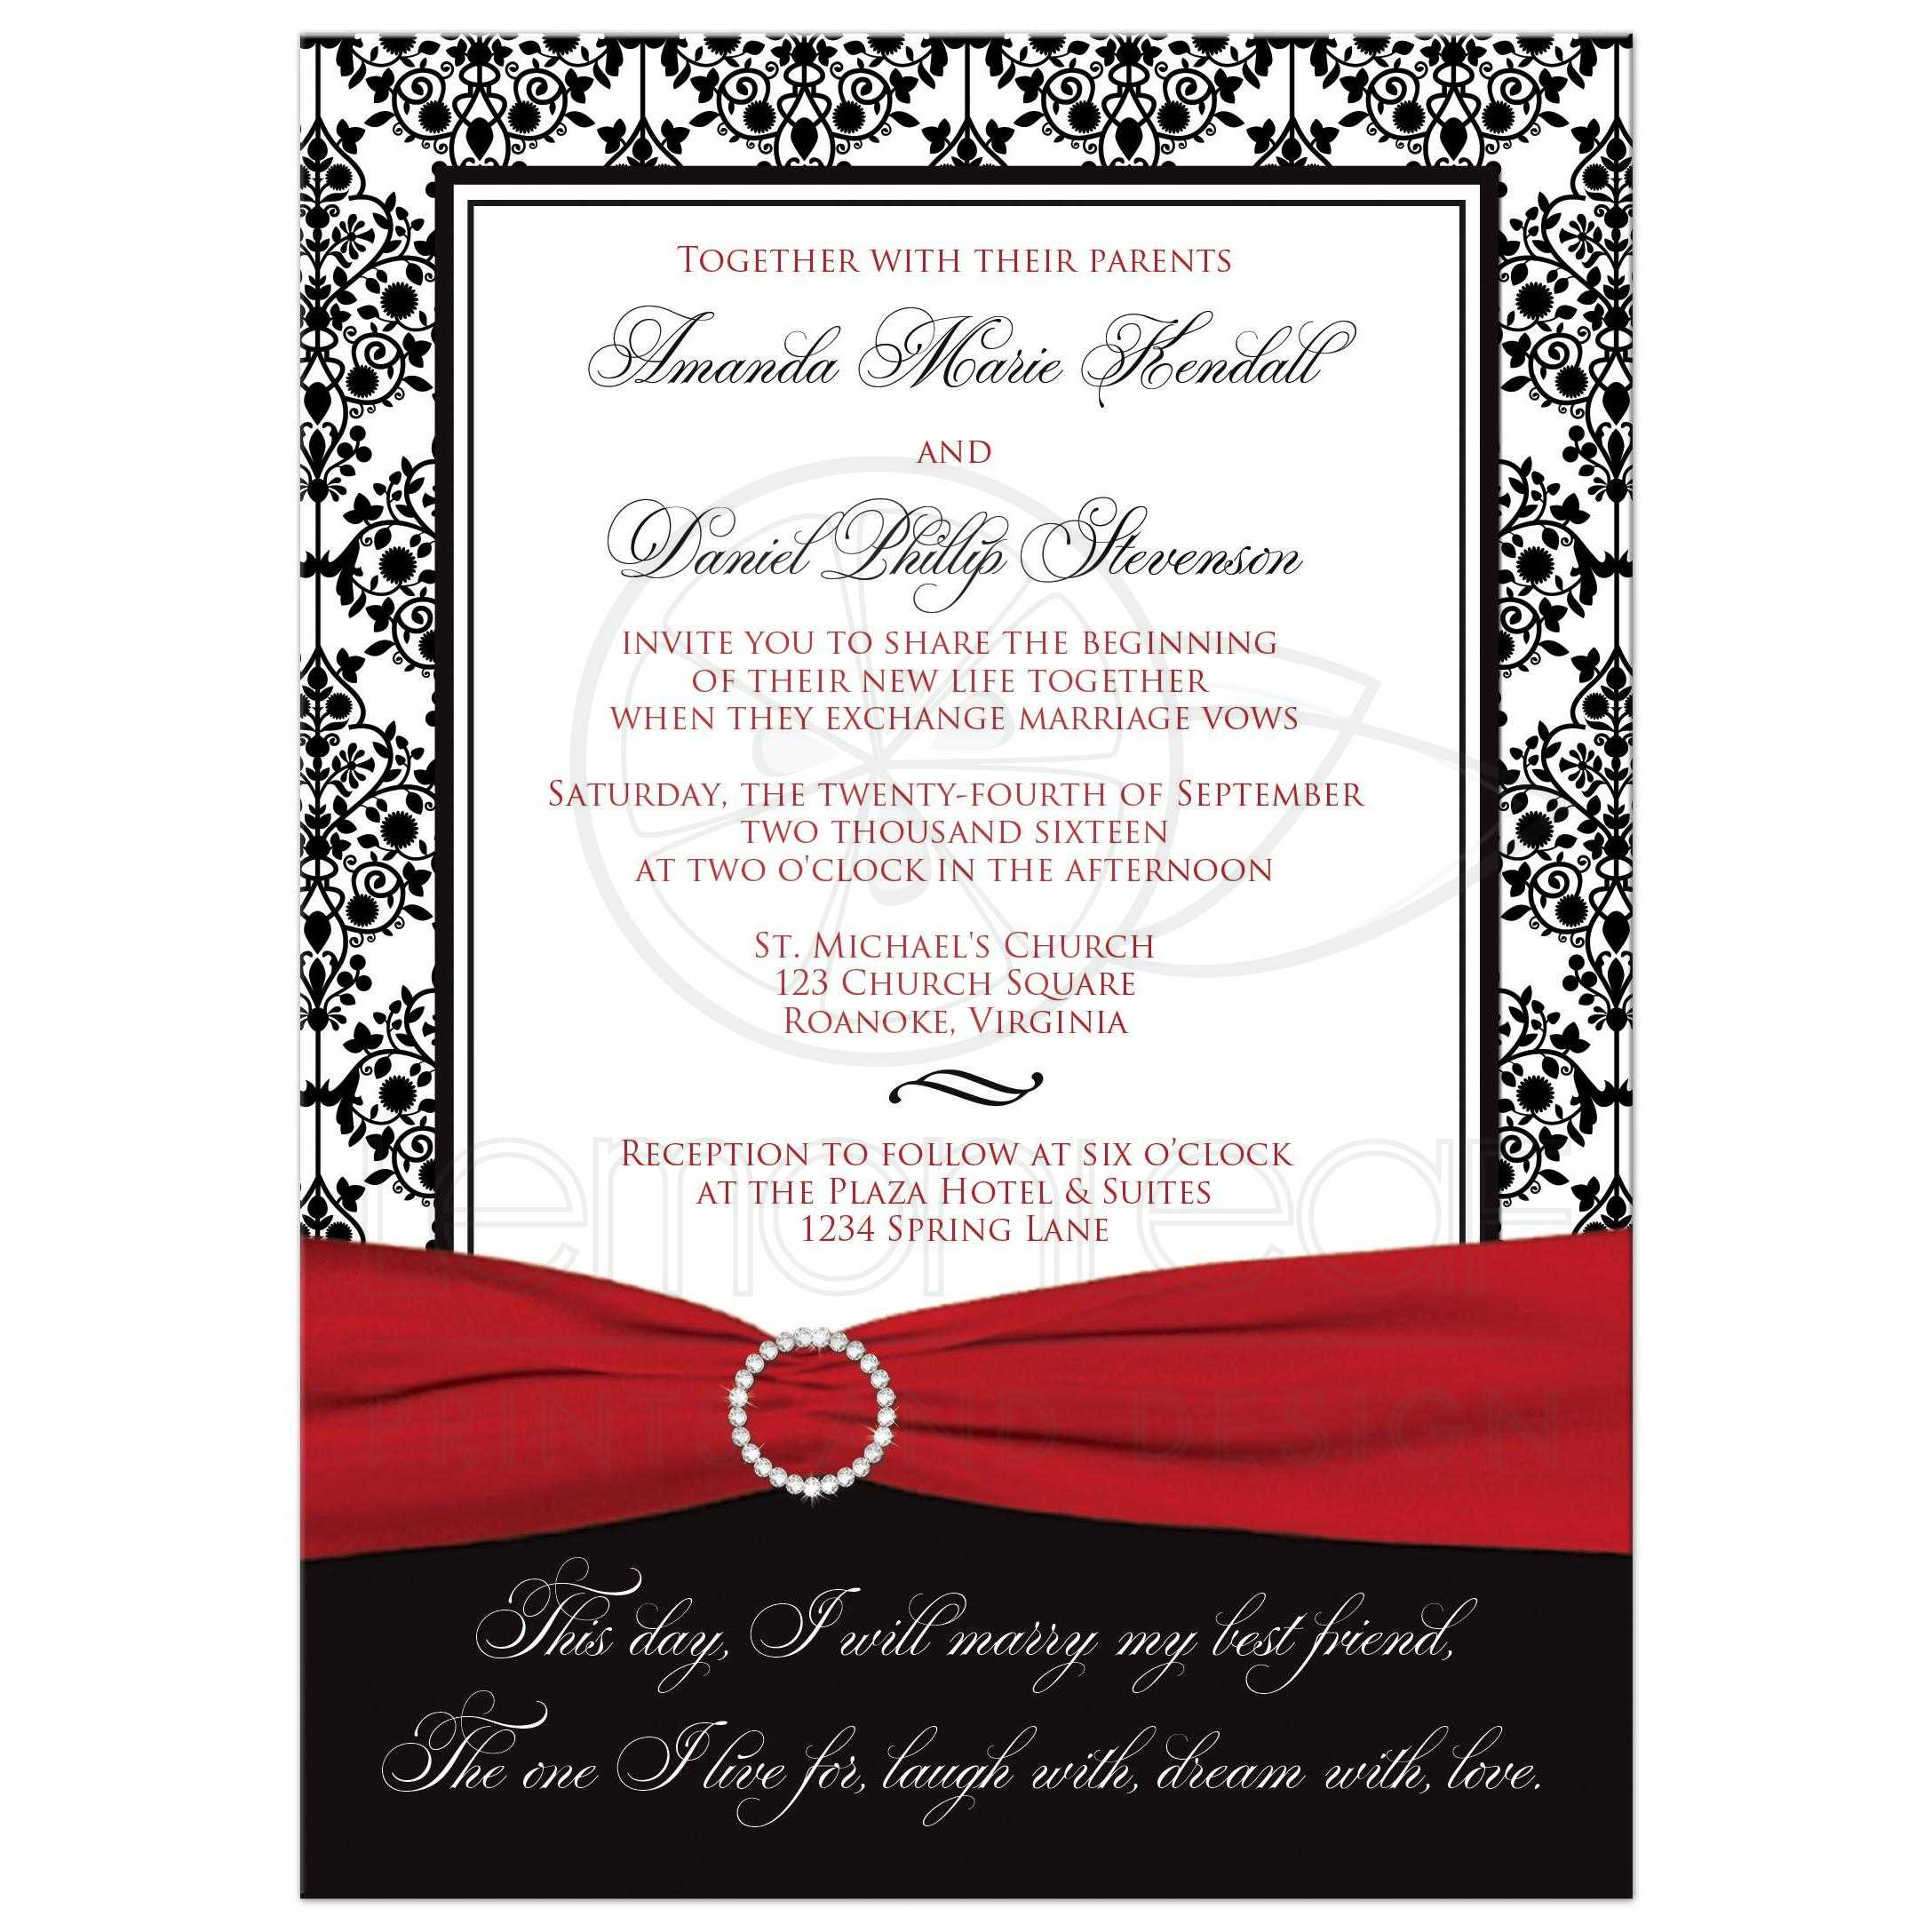 wedding invitations black white and red - Kubre.euforic.co